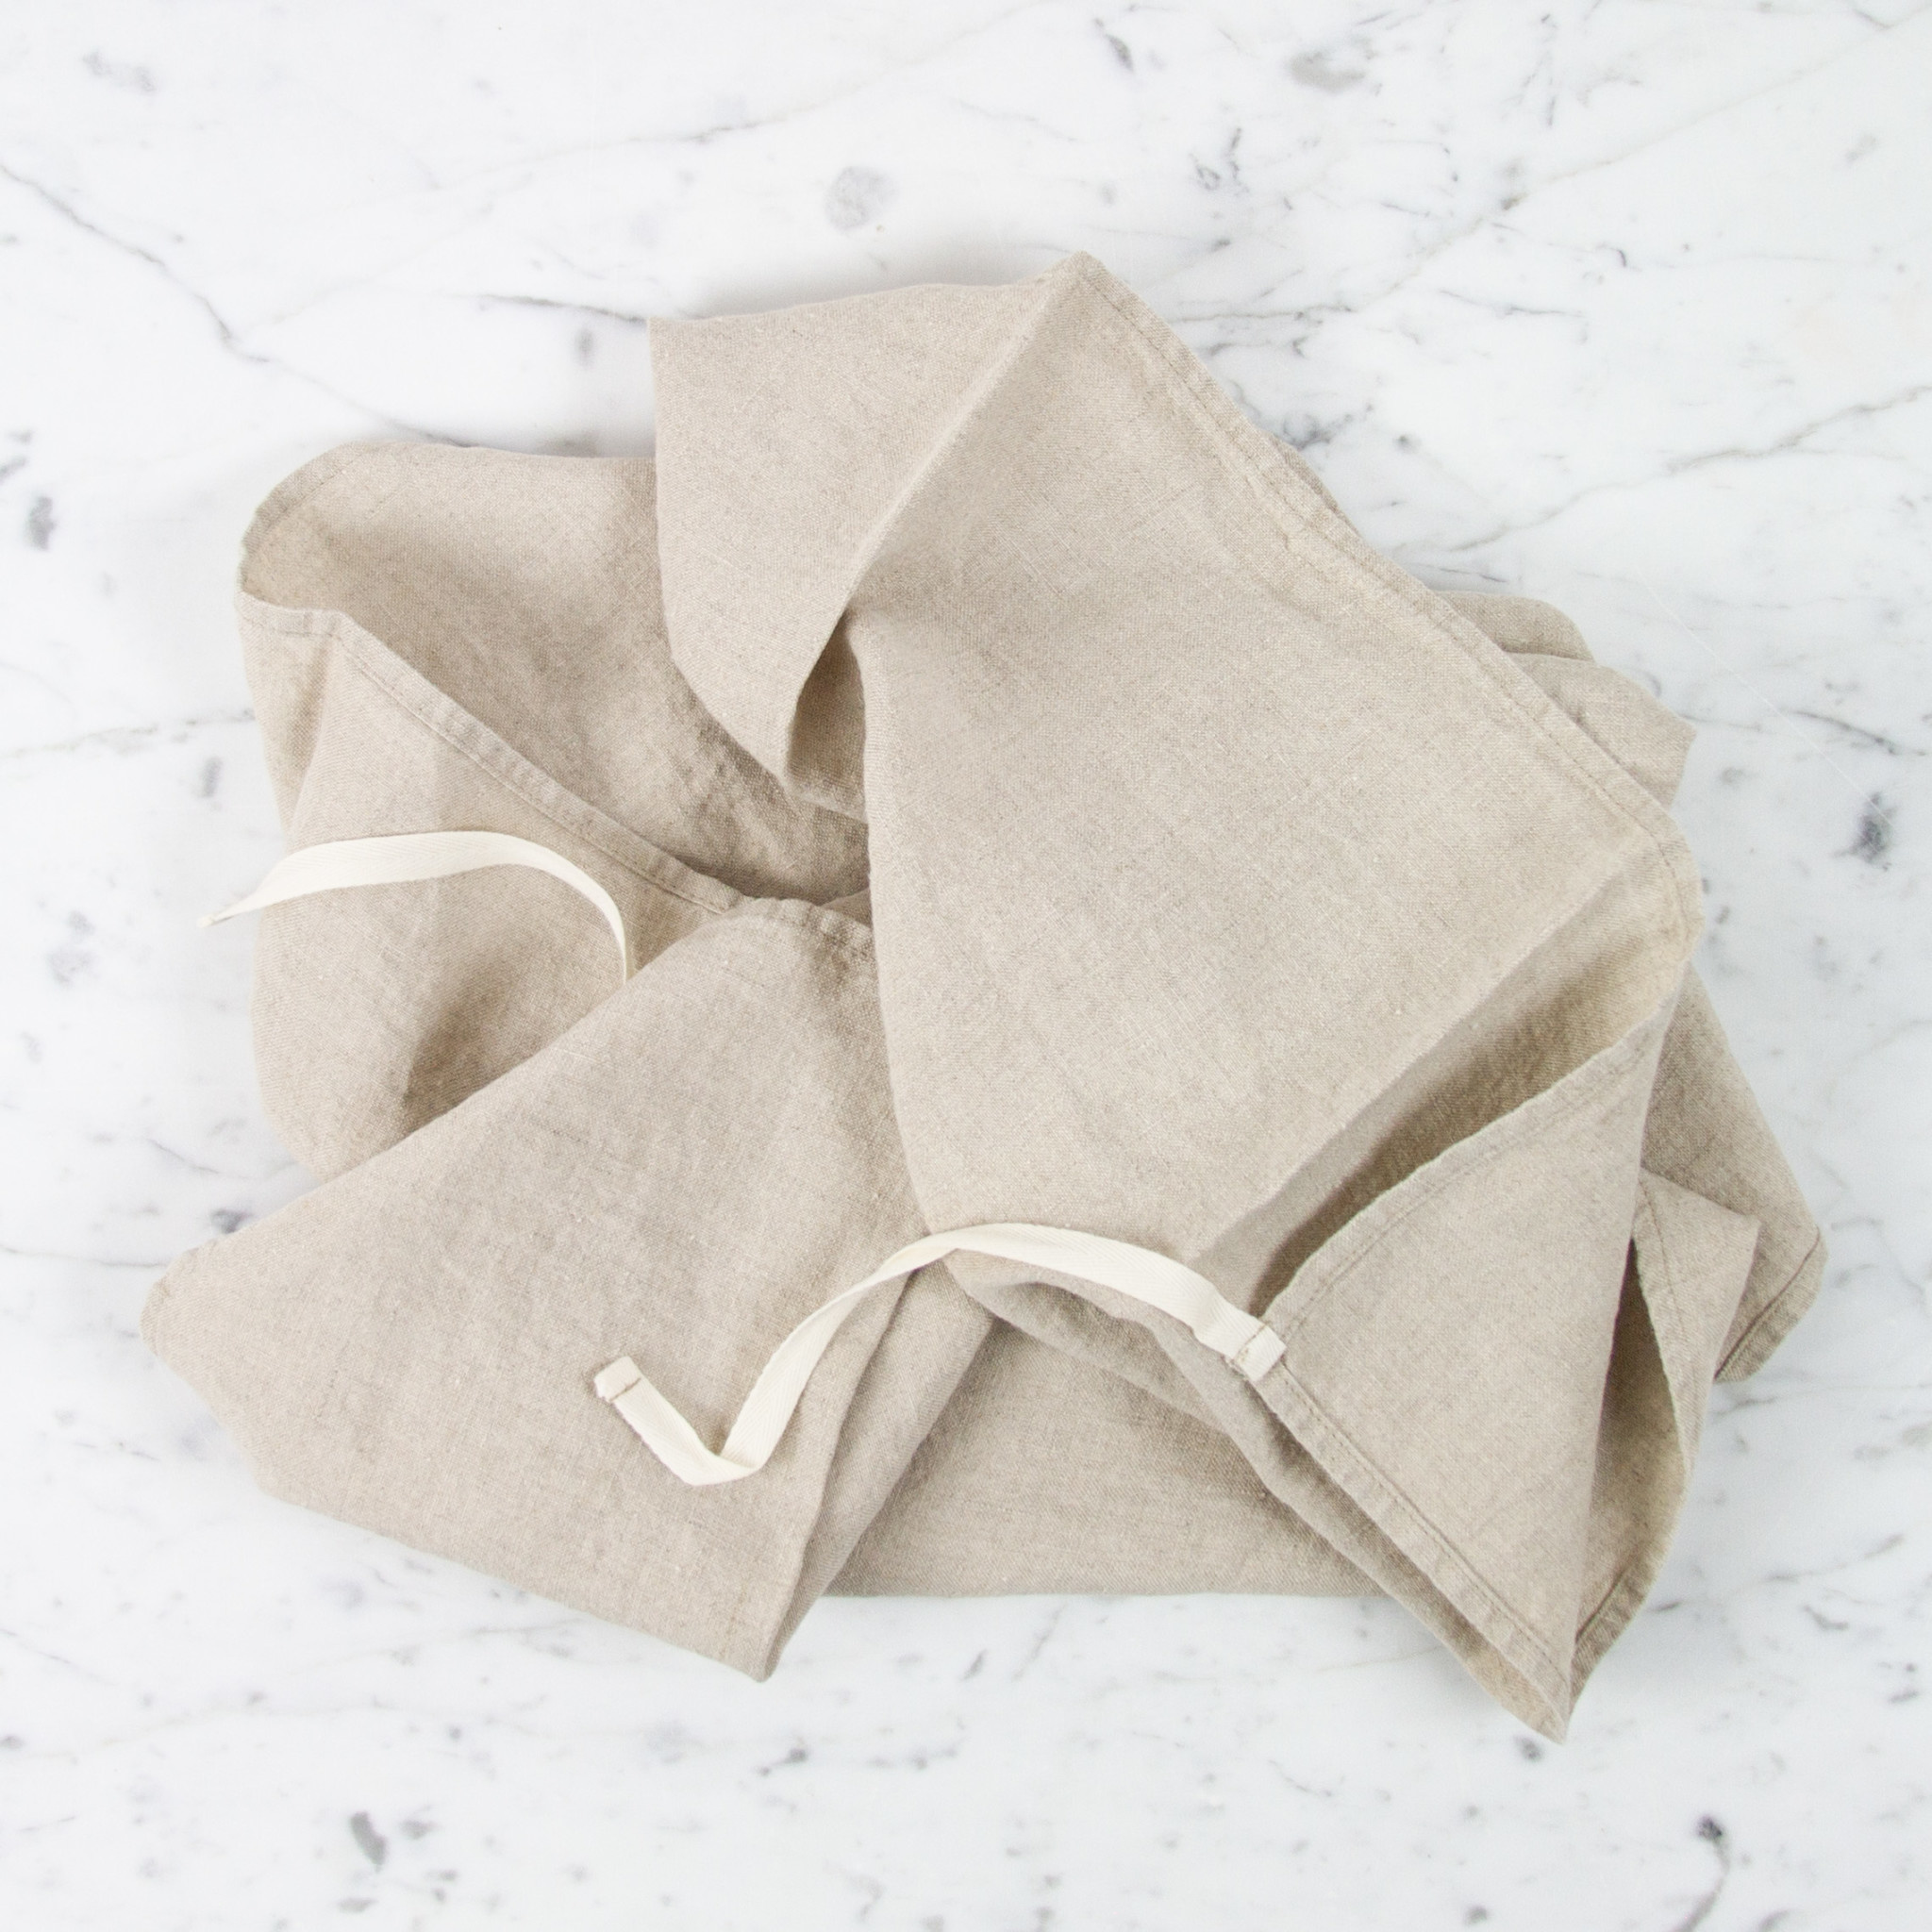 Washed French Linen Dish or Hand Towel with Hidden Apron Strings - Natural Flax